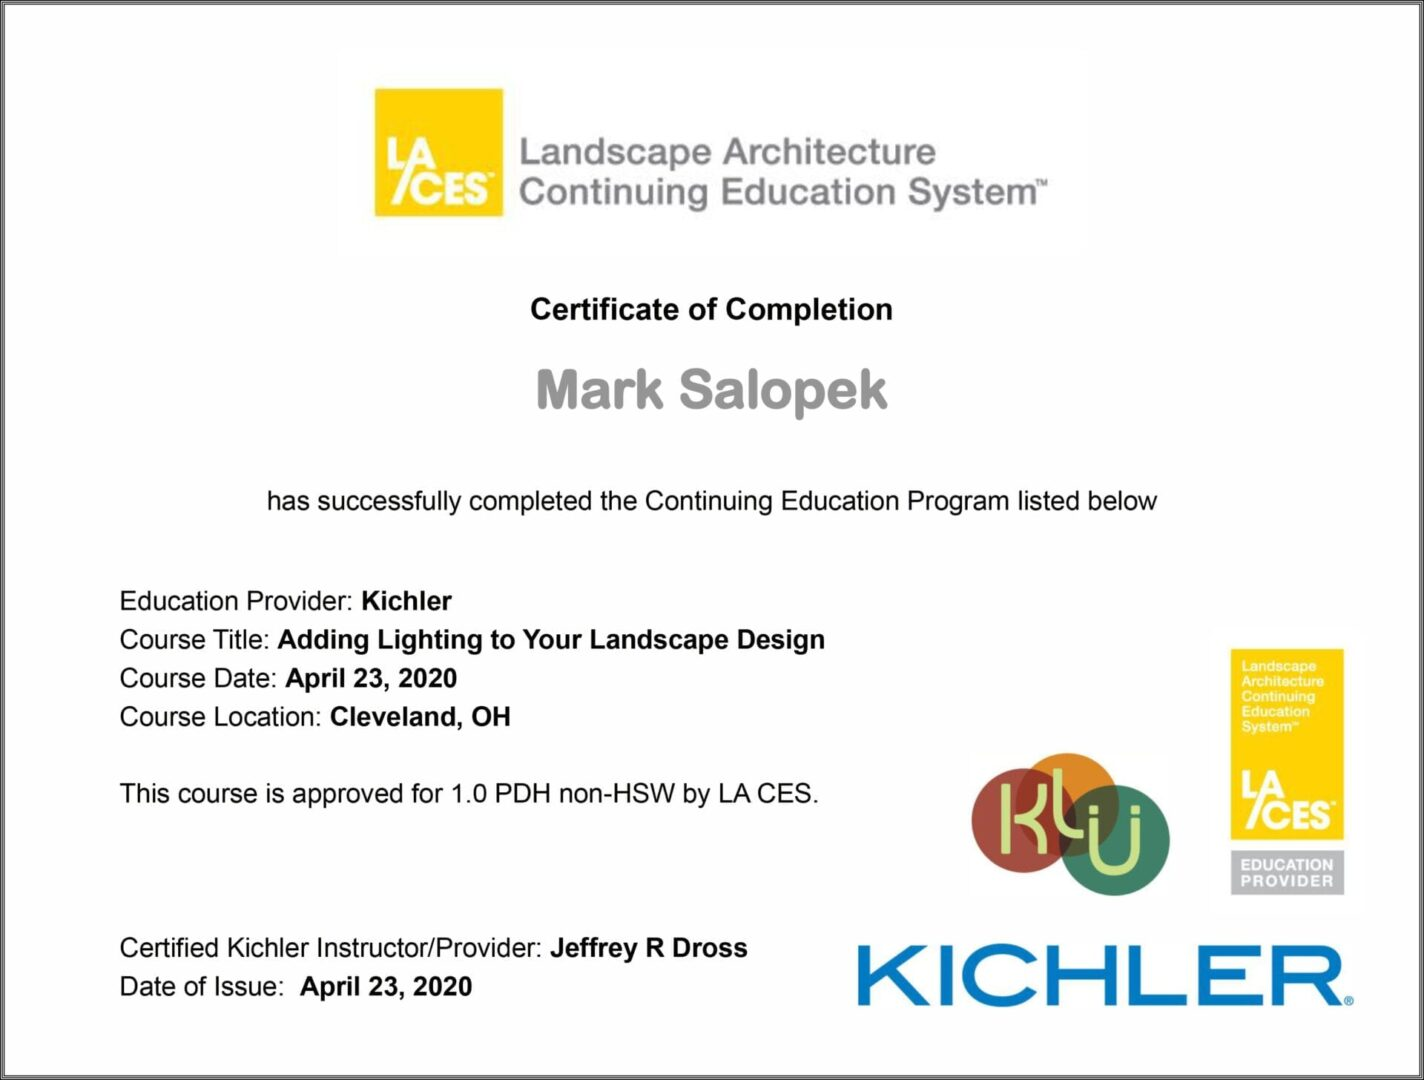 LACES-Landscape-Architechture-Continuing-Education-System-Illumination FL-Landscape-Lighting